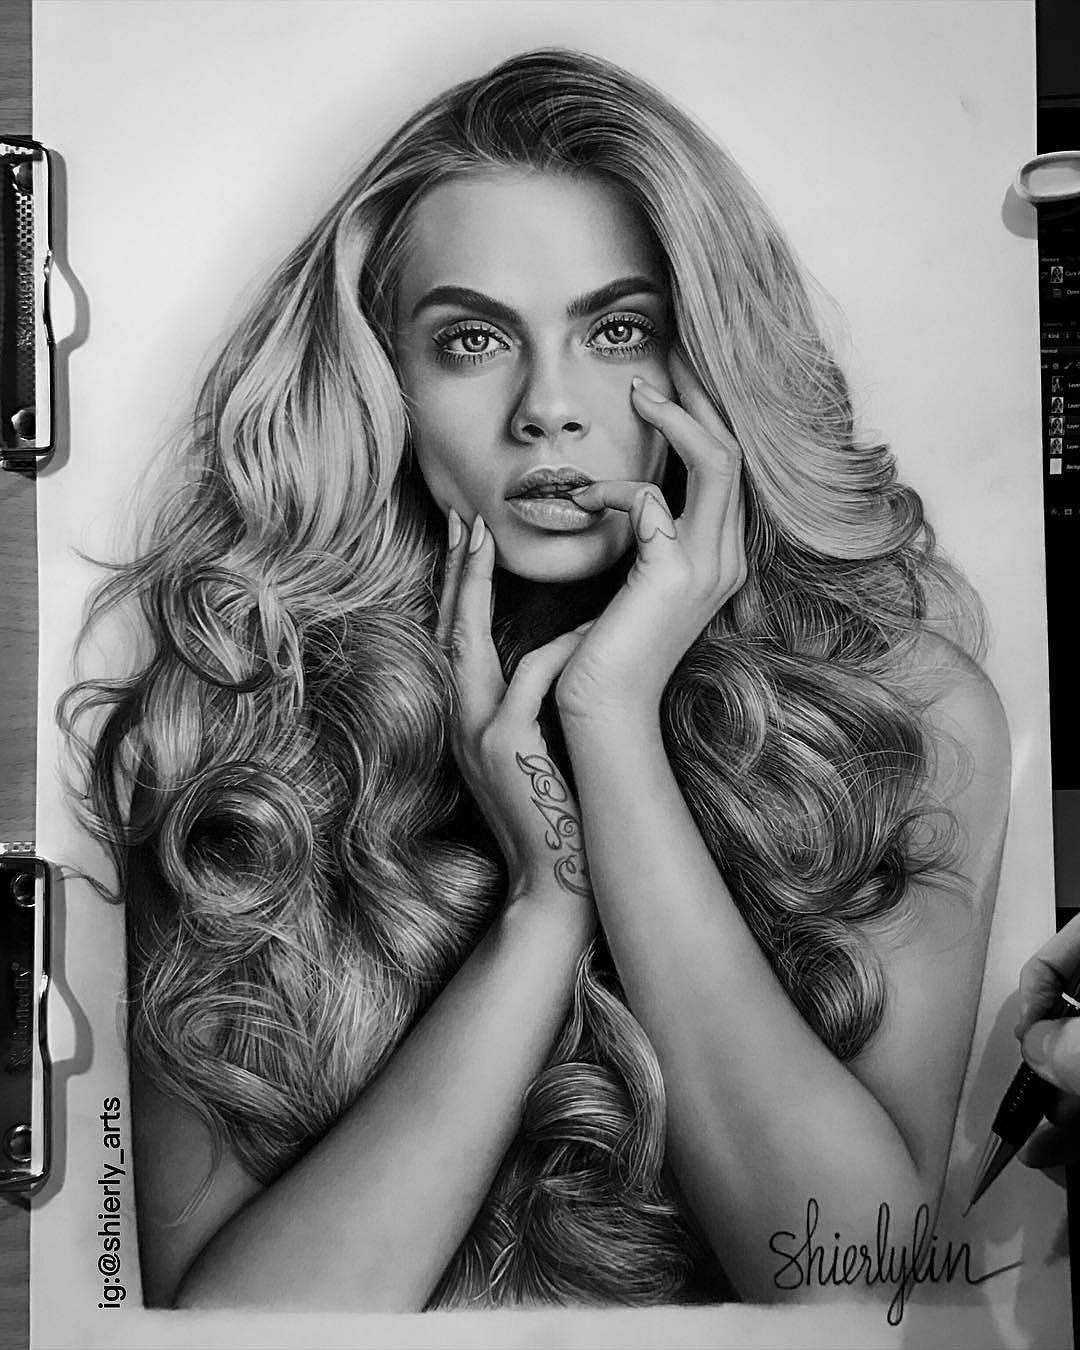 Amazing pencil drawing follow artgully for more art art by shierly arts ig artgully